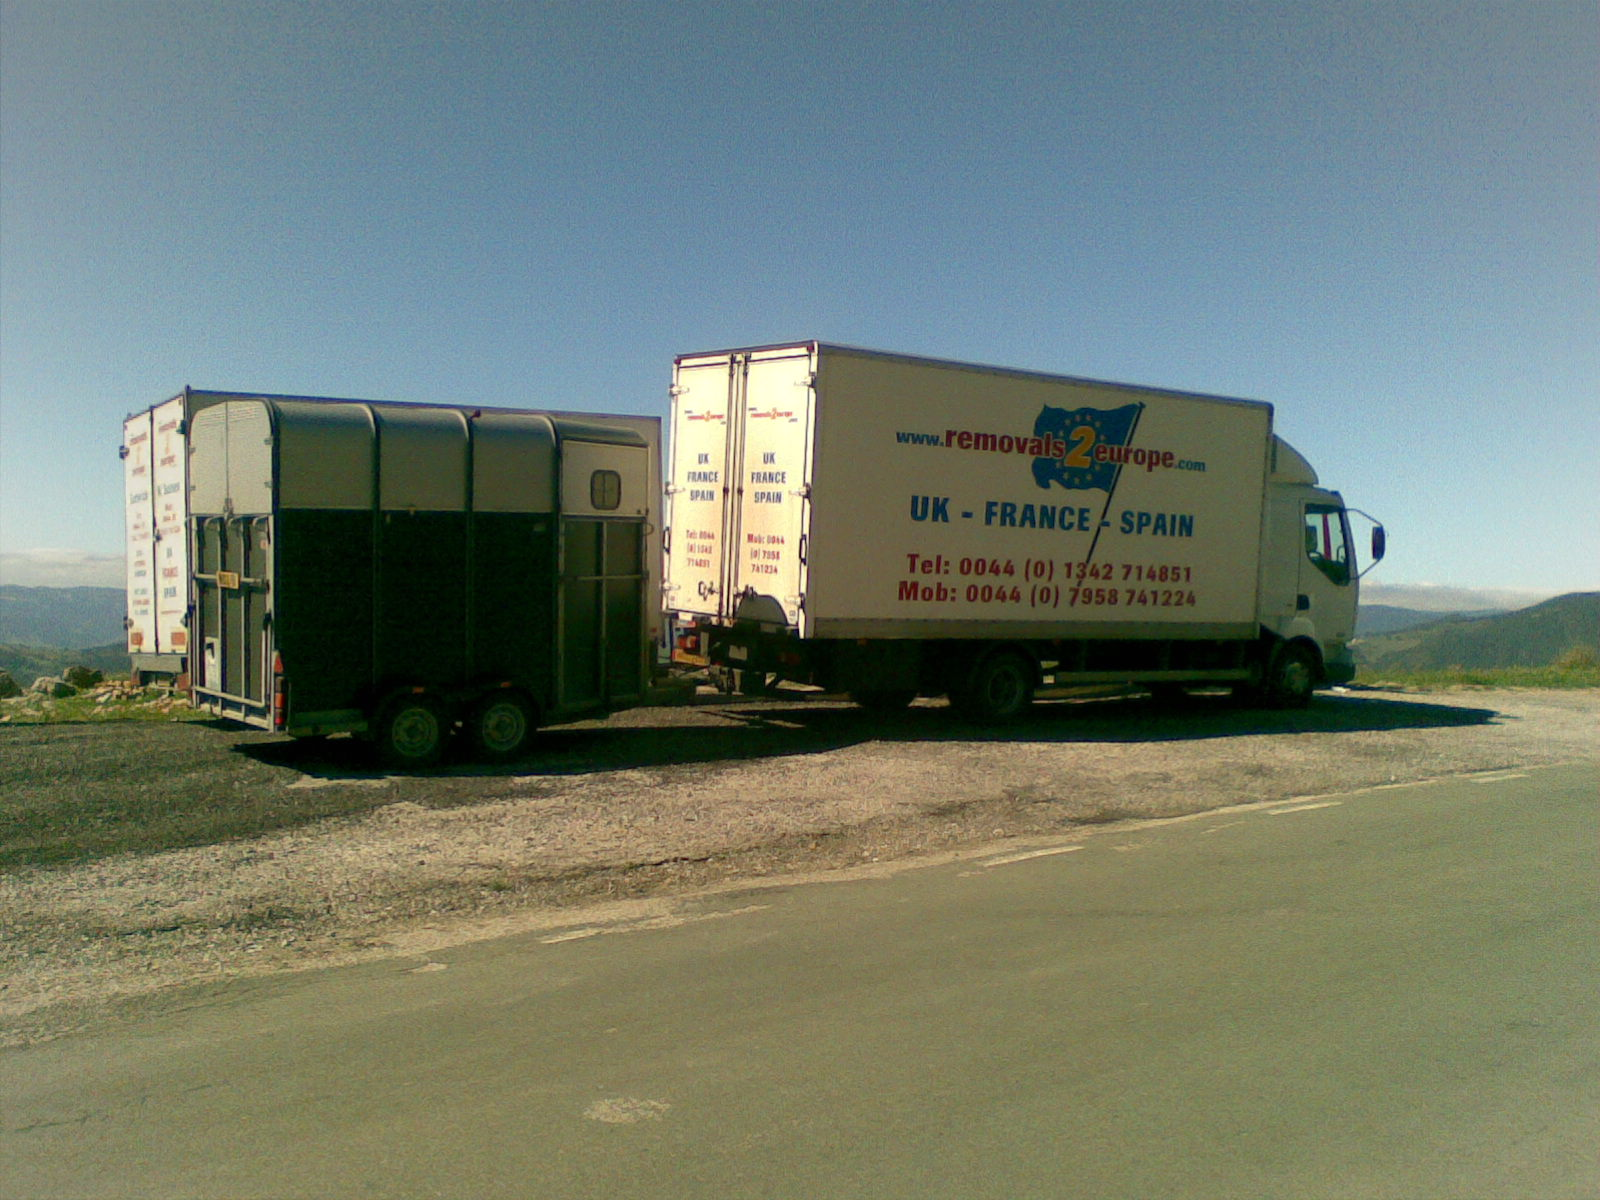 Delivering a horsebox to Portugal